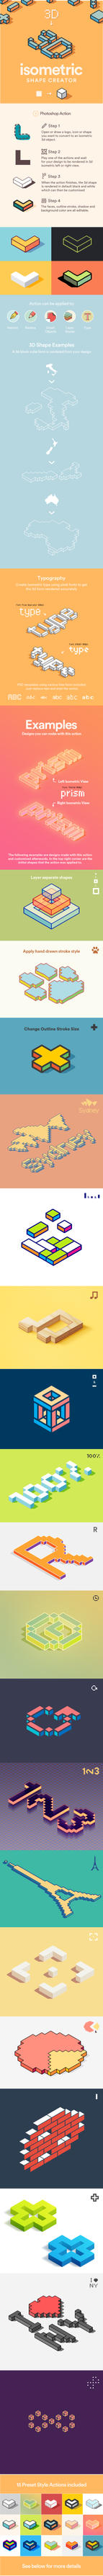 Isometric Shape Creator Preview Image by Pickoora